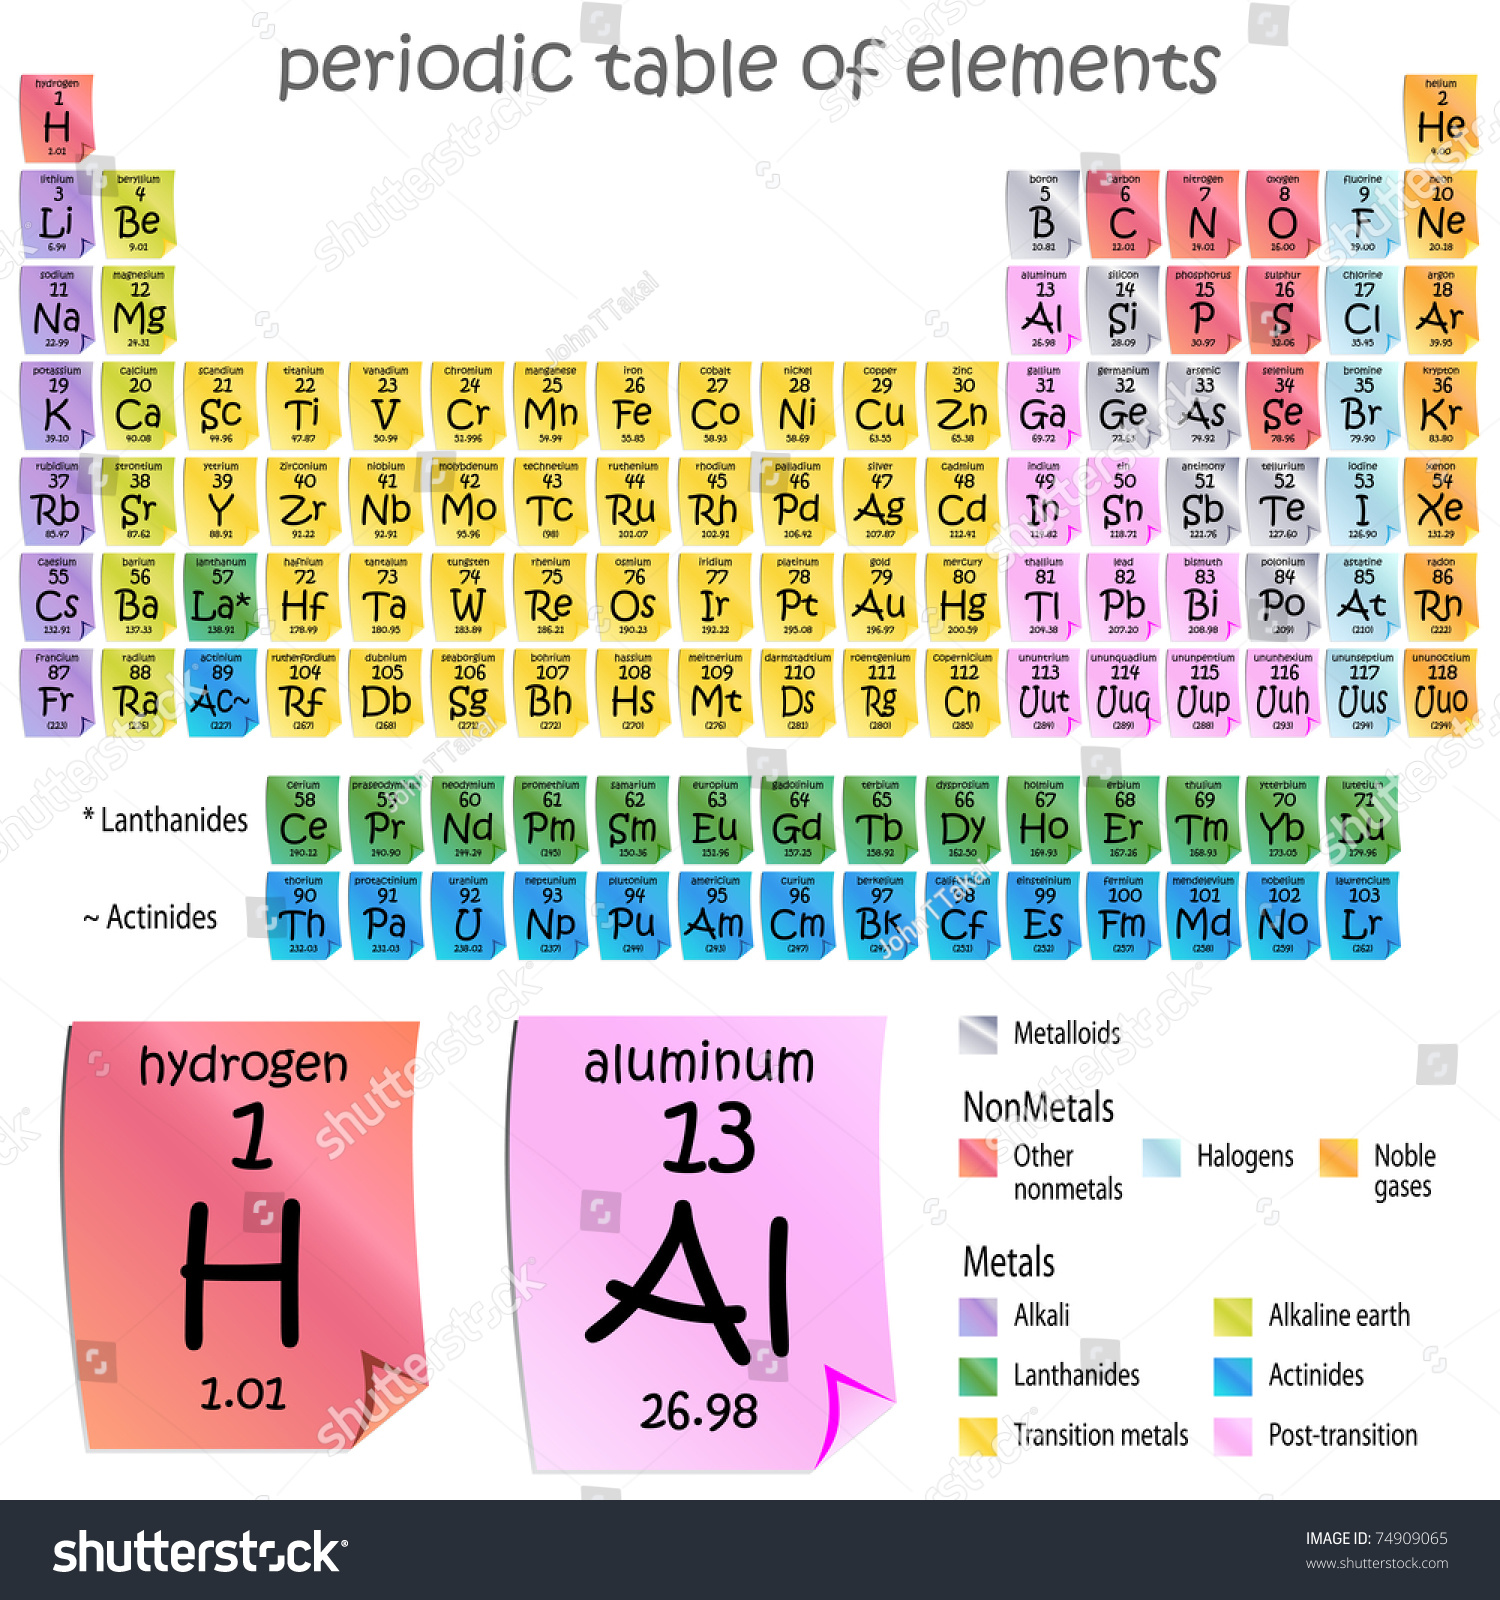 Image periodic table elements sticky note stock vector 74909065 an image of a periodic table of elements sticky note style gamestrikefo Gallery